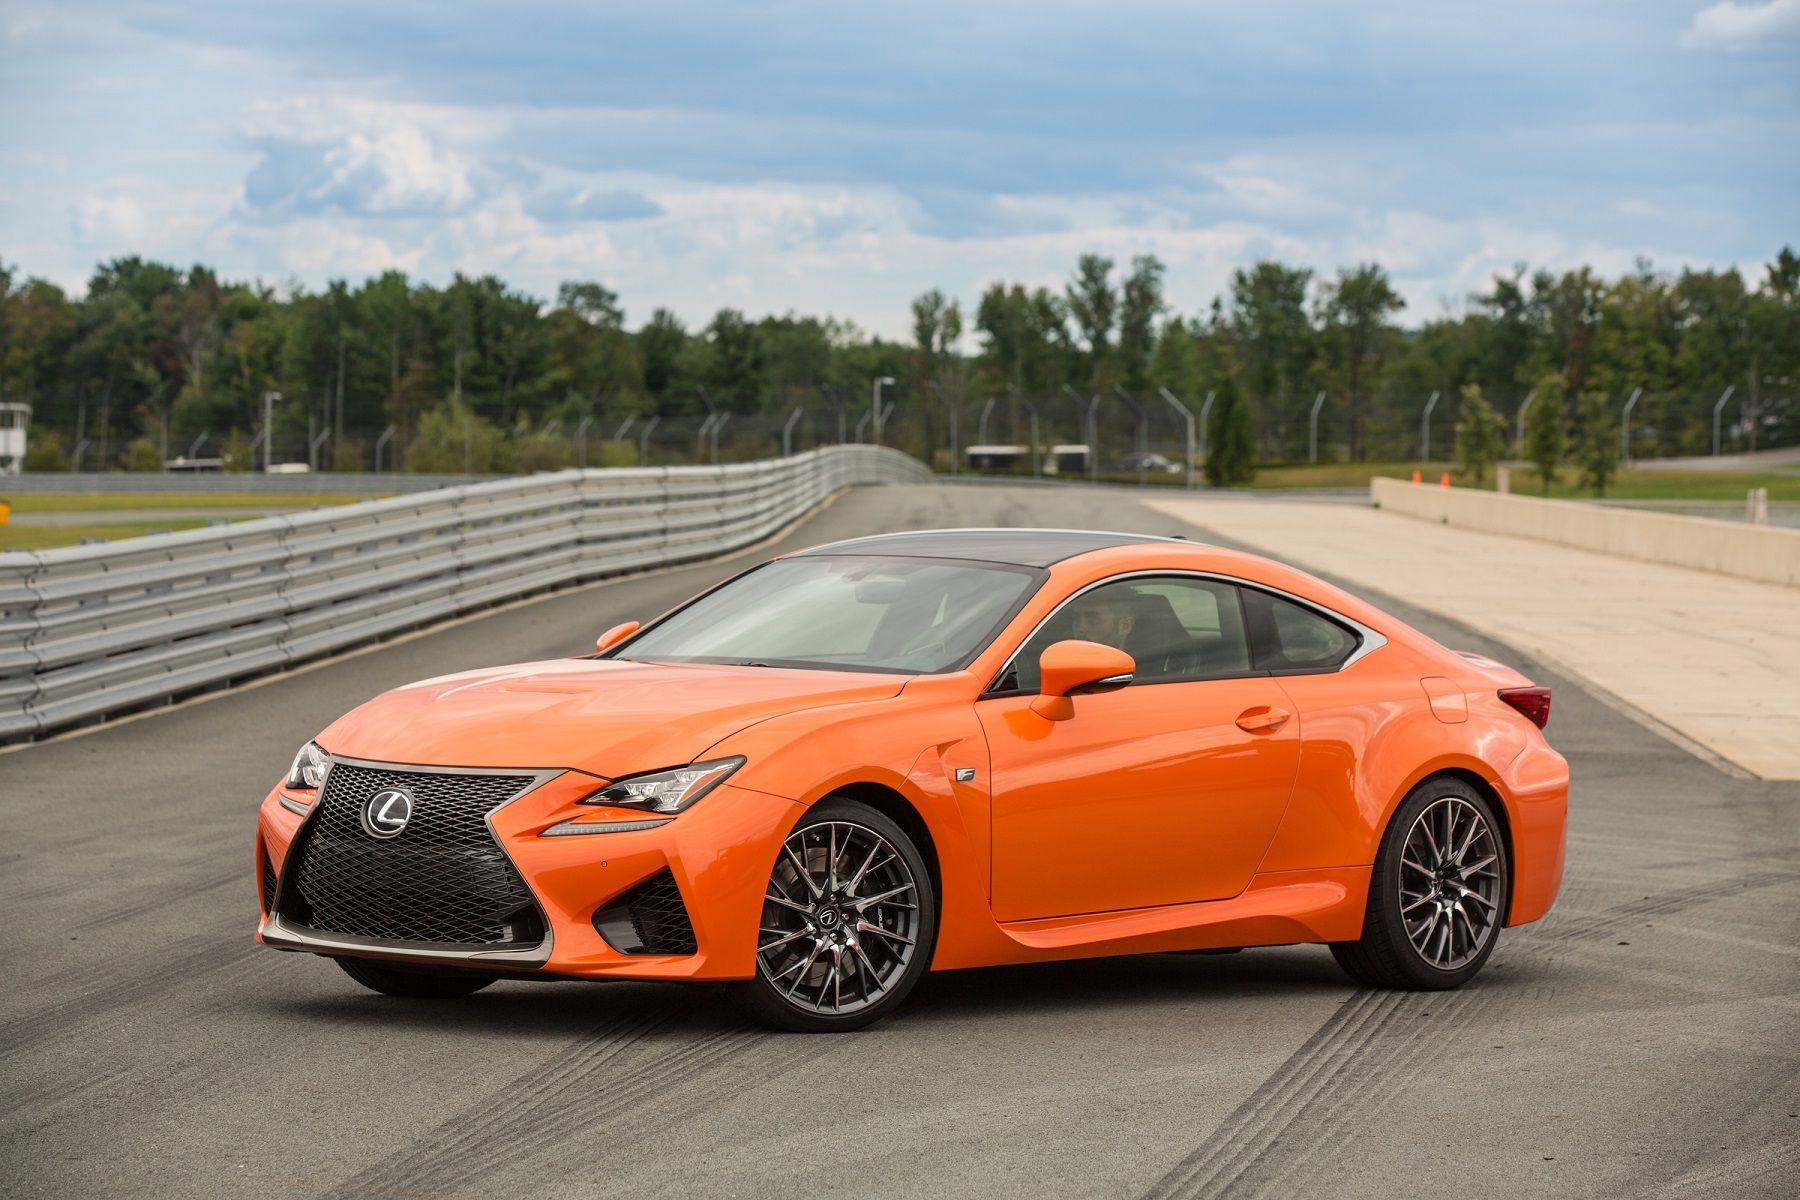 Lexus gets radical with 2015 2door RC coupe lineup